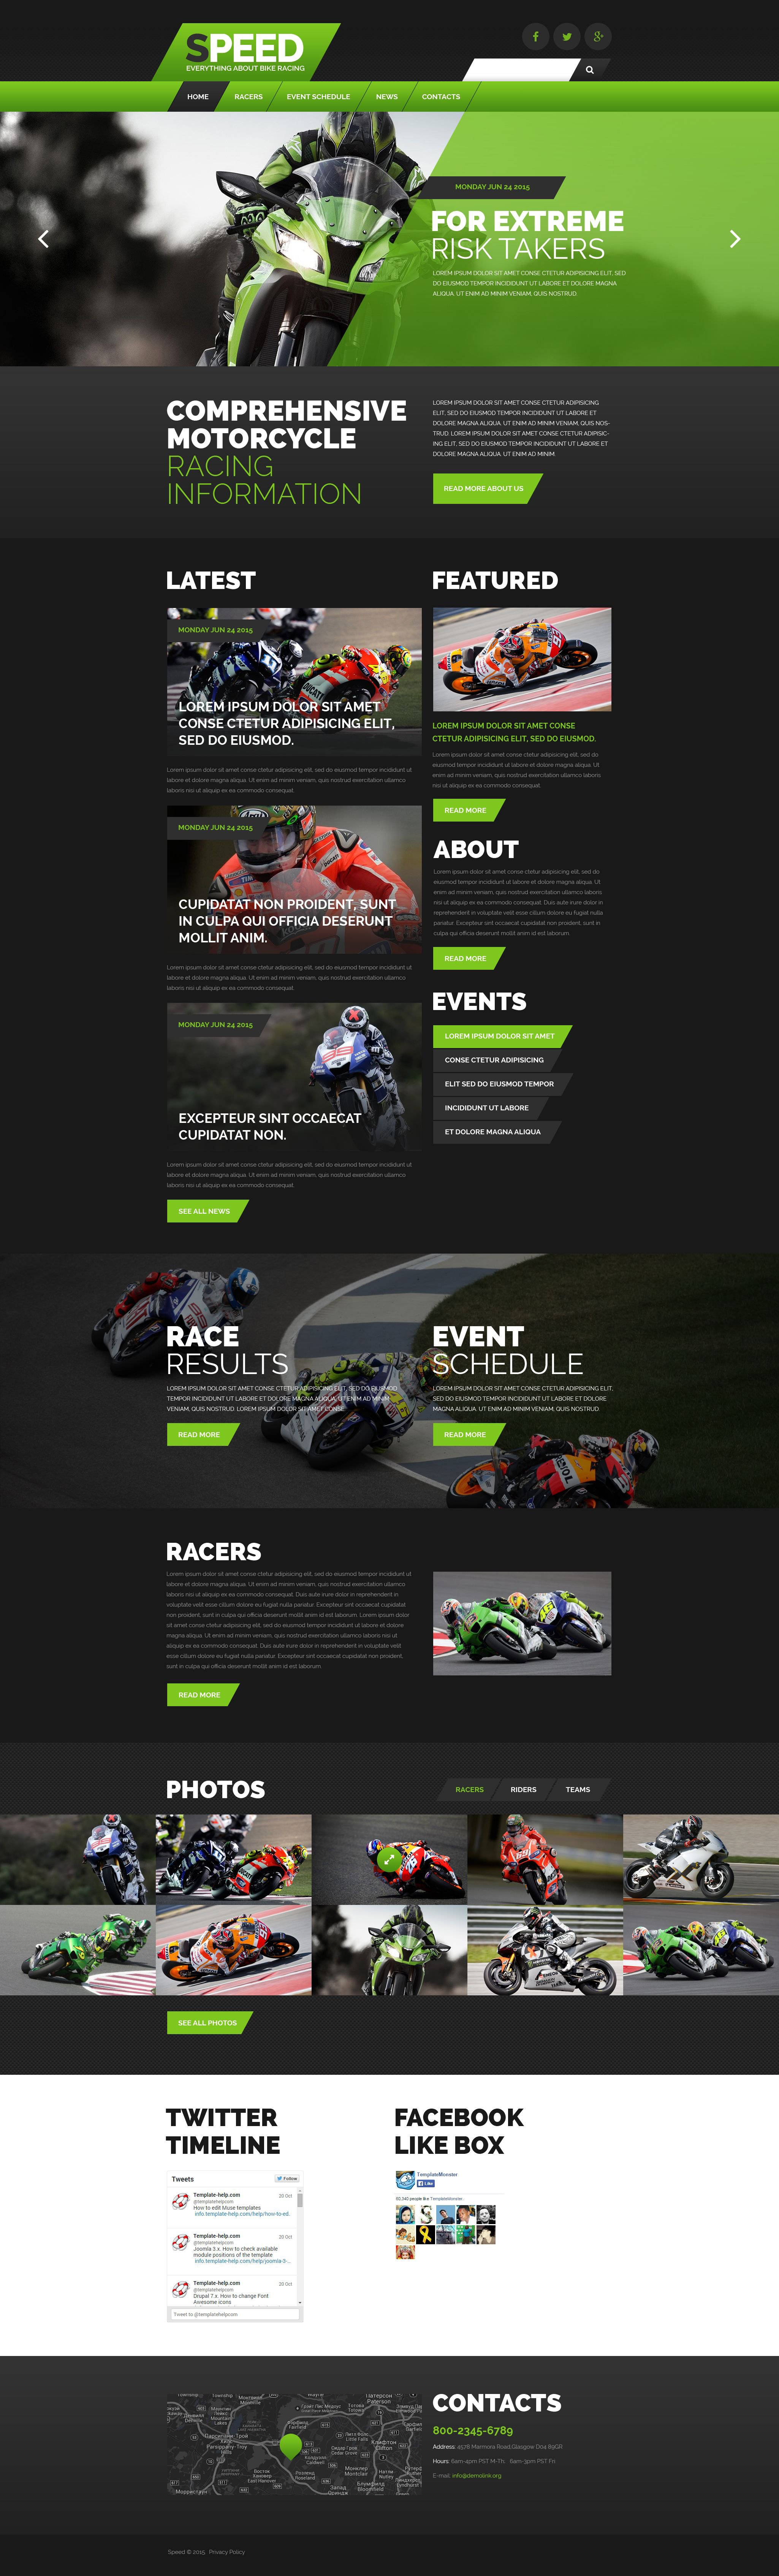 The Motoraces Racer Responsive Javascript Animated Design 54561, one of the best website templates of its kind (sport, most popular), also known as motoraces racer website template, car website template, cars website template, gallery website template, forum website template, members website template, membership website template, spares club website template, auto website template, improvement website template, motor website template, driving website template, off-road website template, racing website template, driver website template, track website template, race website template, urban website template, freeway website template, highway website template, road website template, black forum website template, mail website template, us website template, about website template, the club website template, news website template, latest video website template, top 10 website template, racing website template, quality website template, yellow website template, car website template, lights and related with motoraces racer, car, cars, gallery, forum, members, membership, spares club, auto, improvement, motor, driving, off-road, racing, driver, track, race, urban, freeway, highway, road, black forum, mail, us, about, the club, news, latest video, top 10, racing, quality, yellow, car, lights, etc.